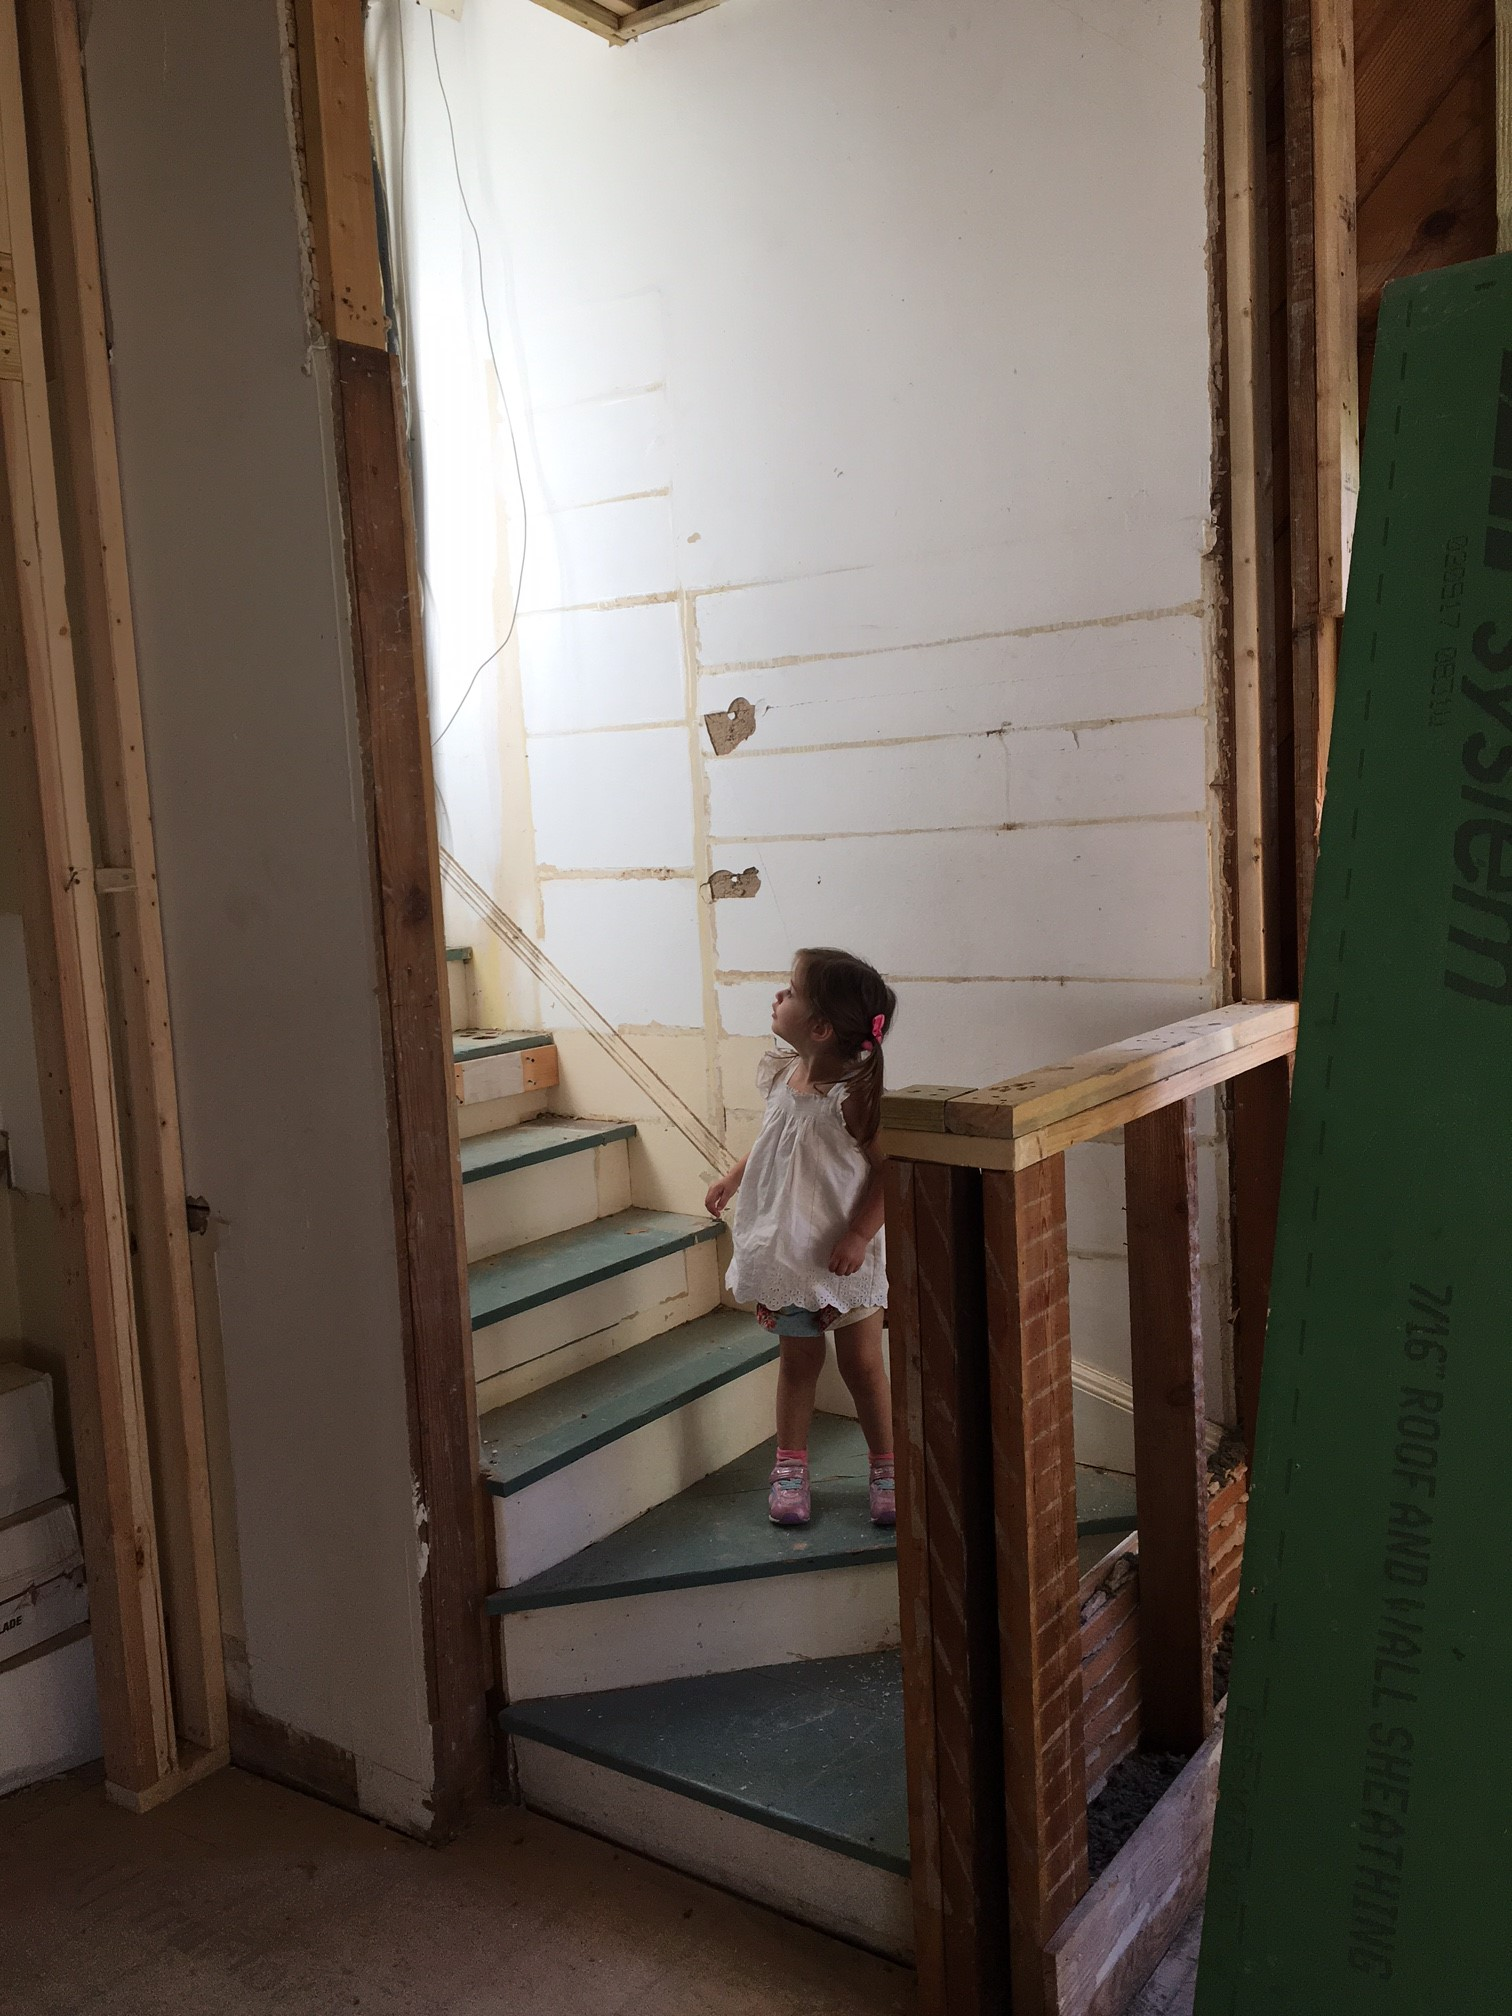 One Of The Most Enchanting And Intriguing Features Of Our Home Is The Front  Entry Staircase Area. It Is Not A Central Hall Home, Which Allows For A  More ...